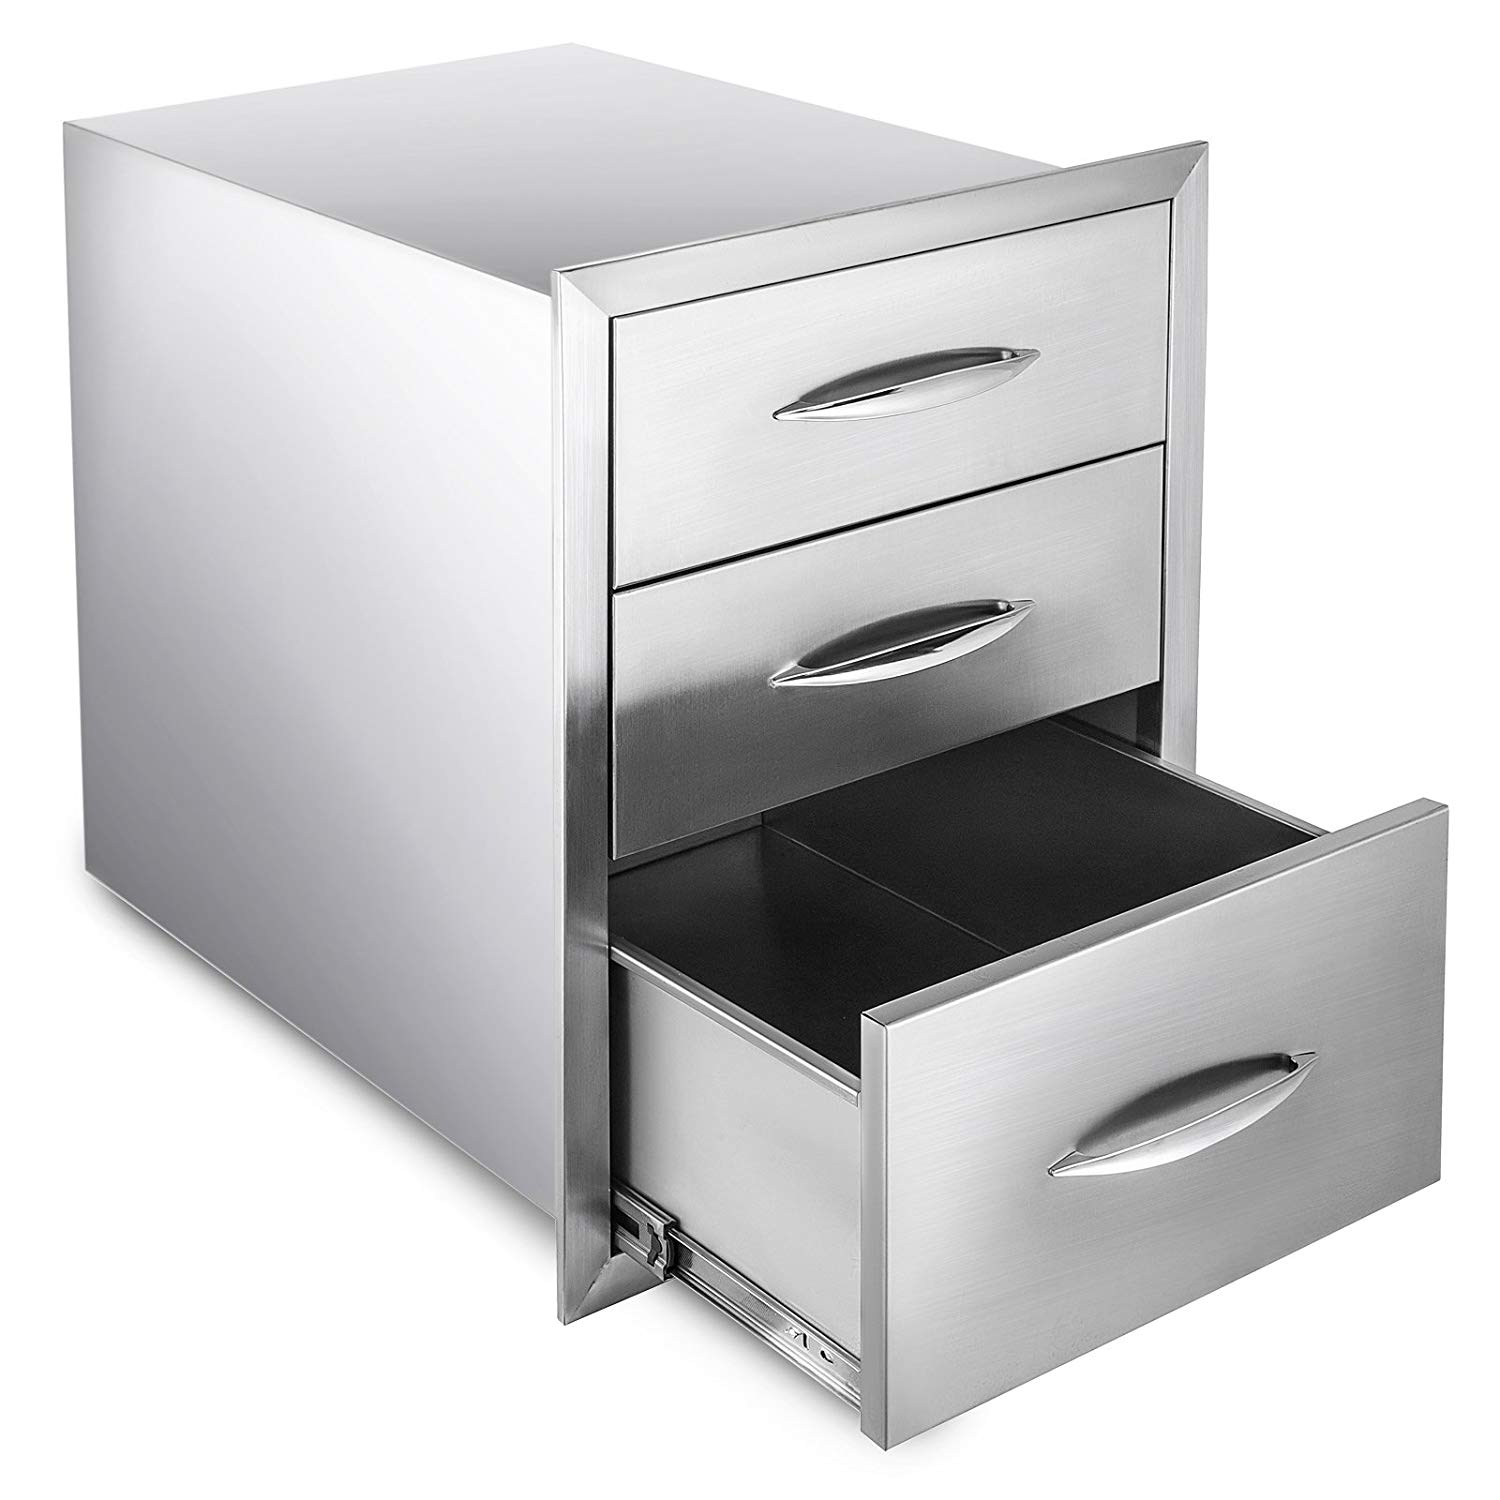 """Happybuy Outdoor kitchen drawer 18""""x15"""" Stainless steel BBQ Island Drawer storage with Chrome Handle Double Access Drawer Flush Mount Sliver Double Access Drawer (Outdoor kitchen drawer 18""""x23"""")"""